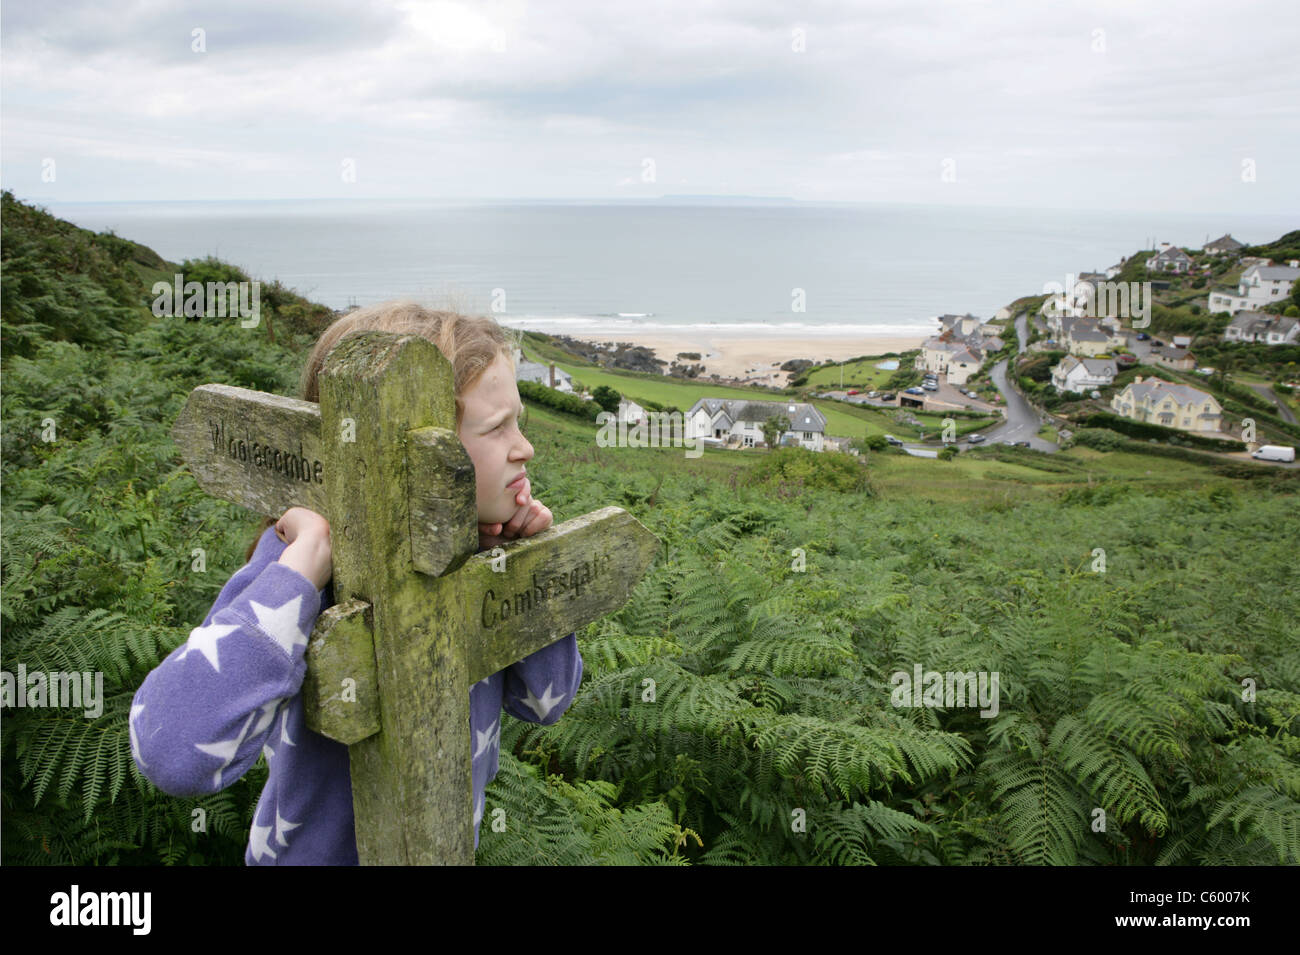 A young girl  beside a direction sign on the coastal path above Mortehoe Beach, Woolacombe in North Devon - Stock Image